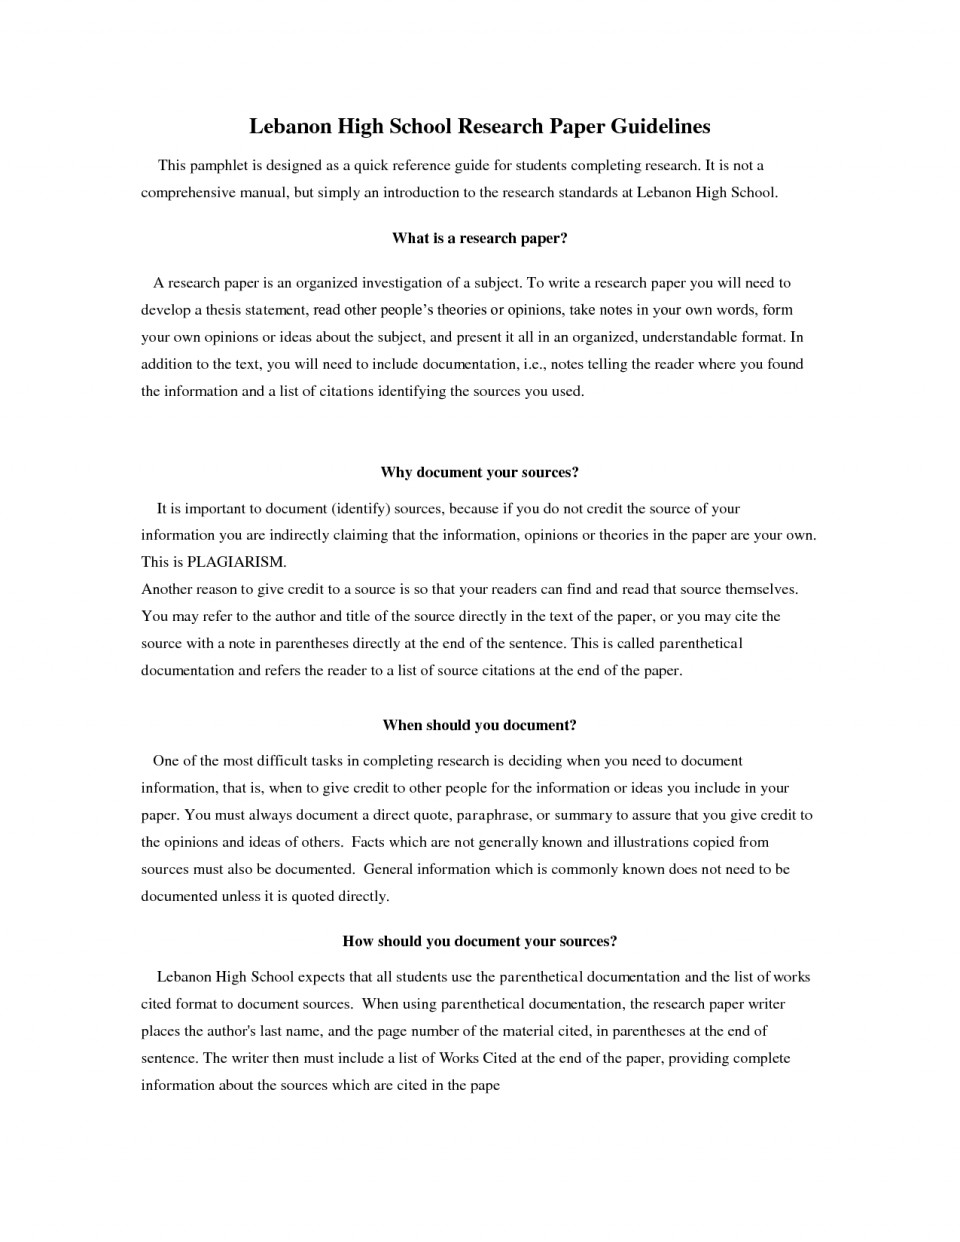 010 Research Paper Good Shocking Topics For Us History Argumentative College English Best Reddit 960